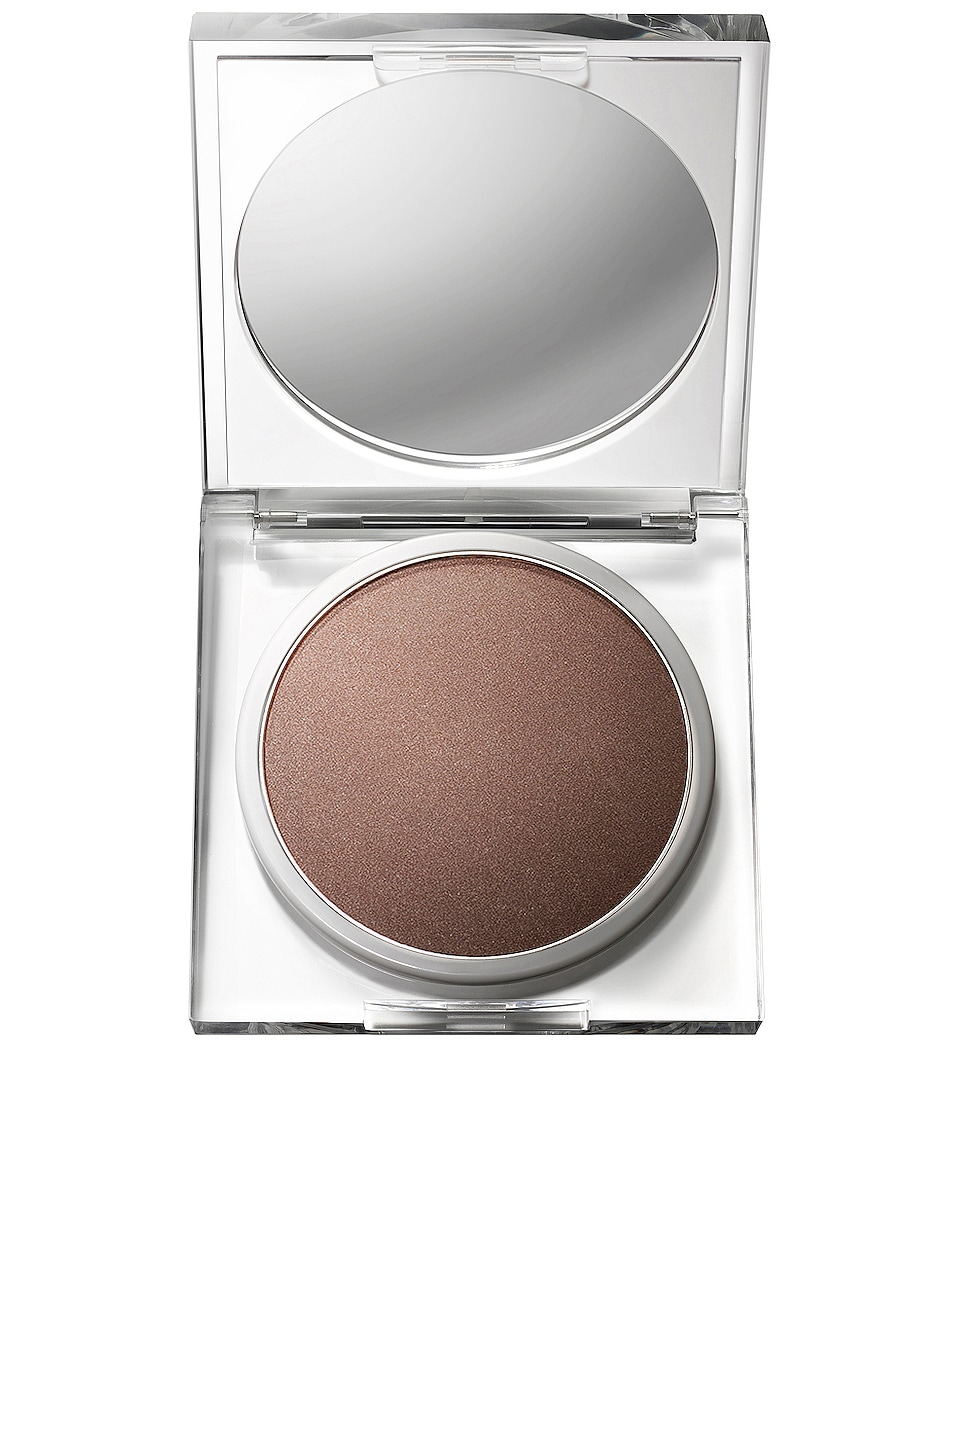 RMS Beauty Luminizing Powder in Madeira Bronzer